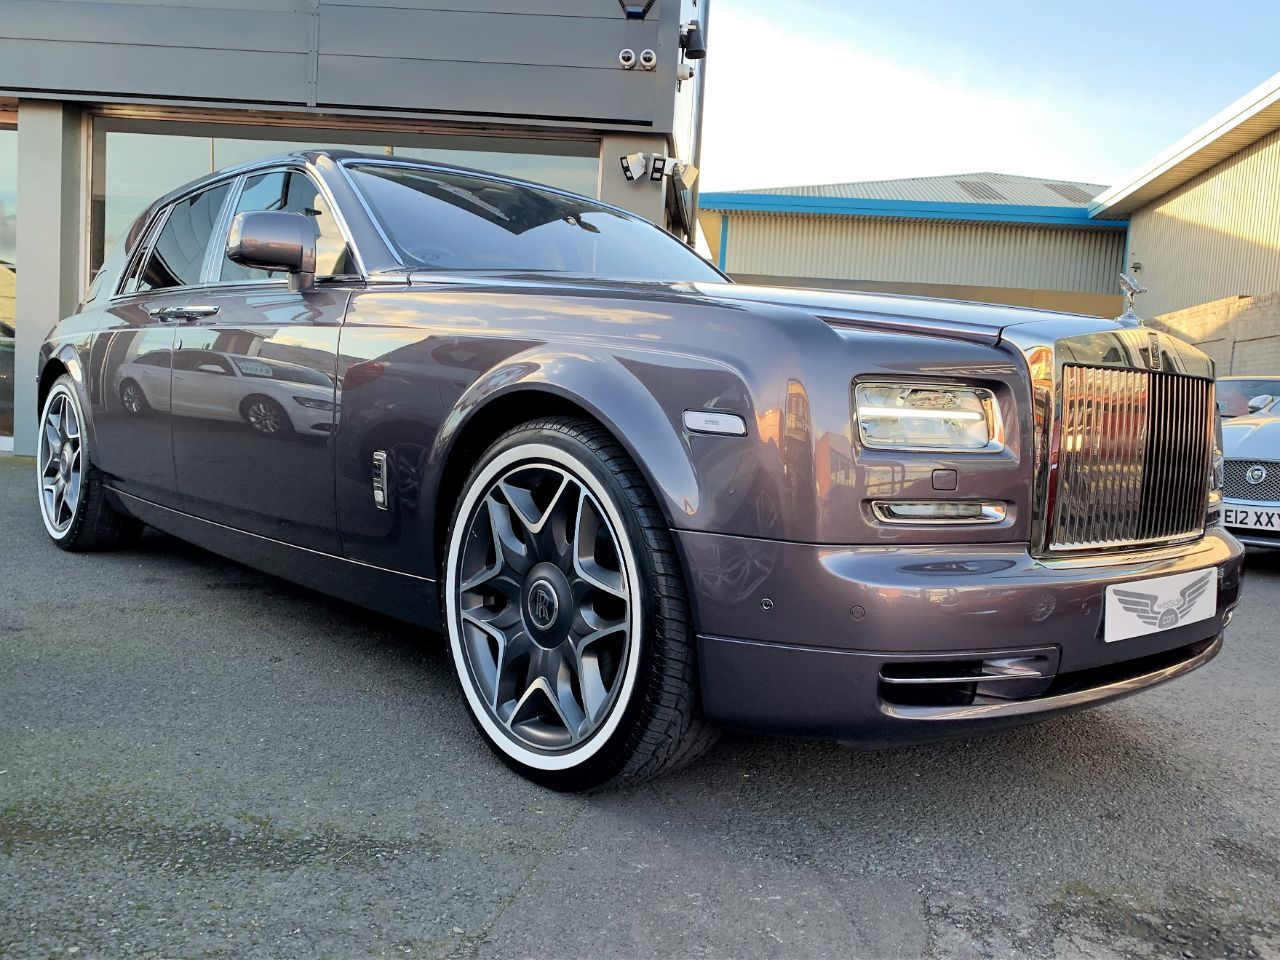 Rolls Royce Phantom 6.7 PHANTOM AUTO Saloon Petrol Anthracite Grey Metallic